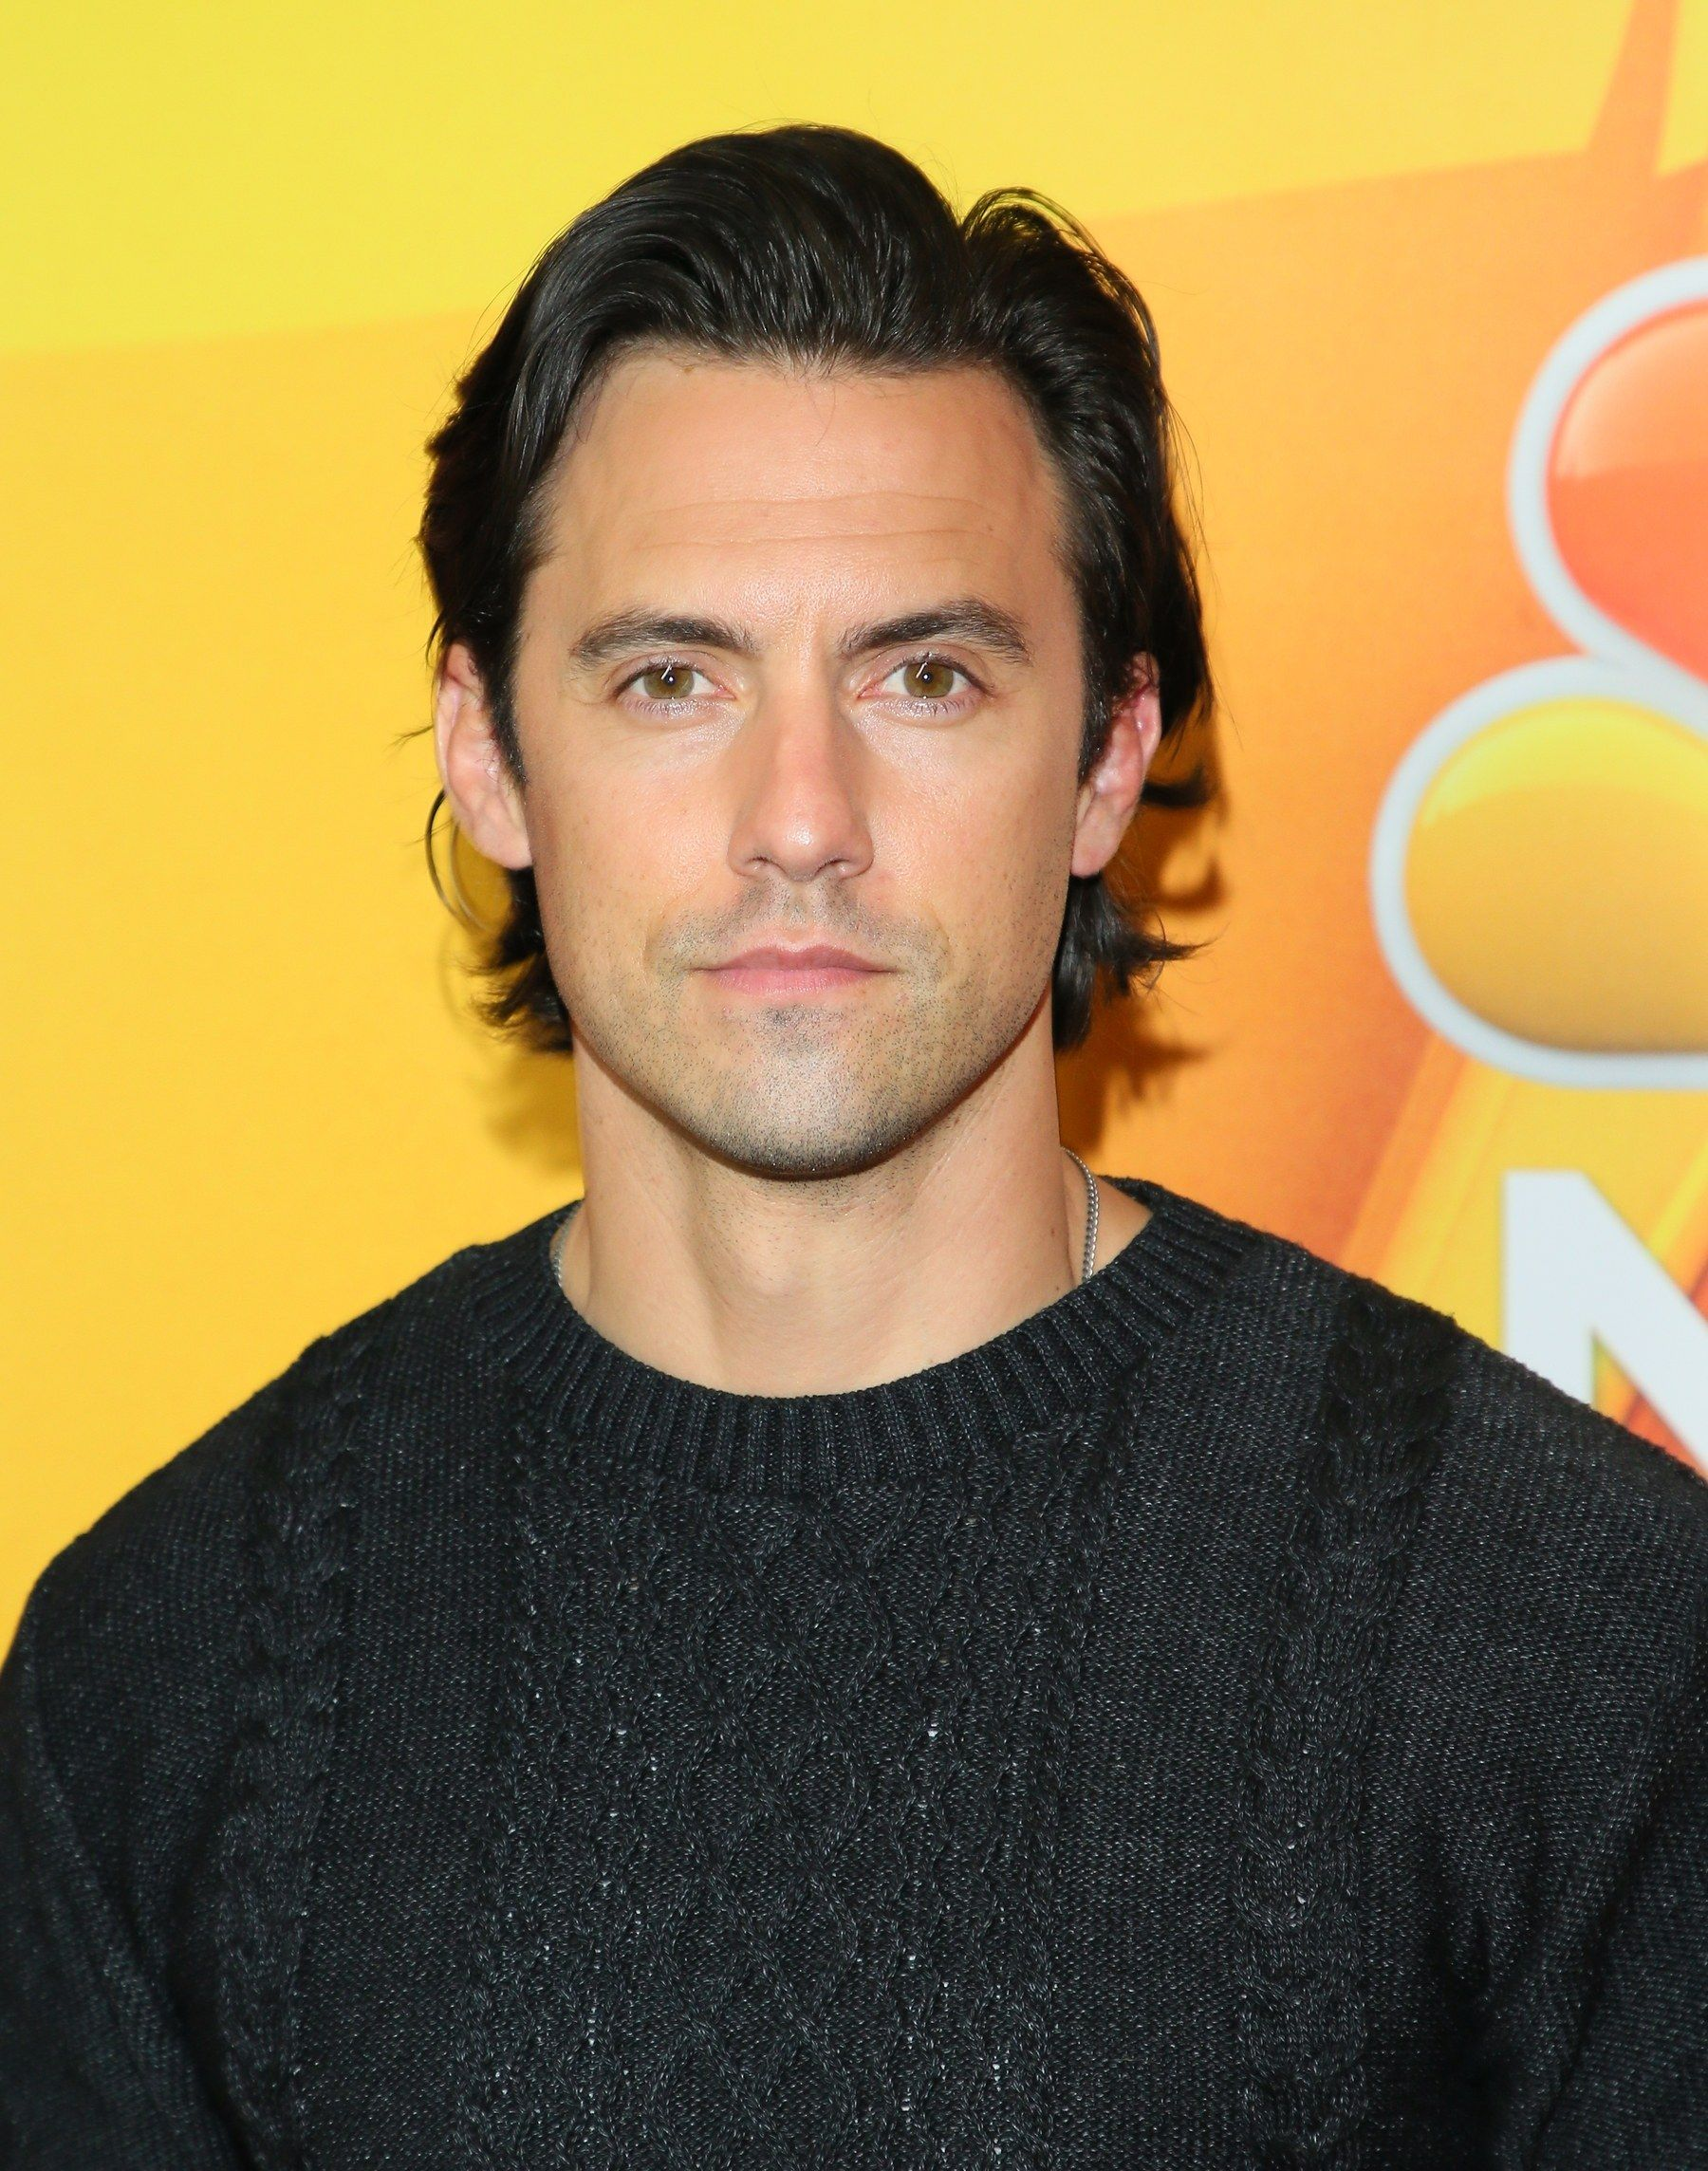 Milo Ventimiglia S Long Hair Just Went From Great To Hmmm Ventimiglia Long Hair Styles Milo Ventimiglia